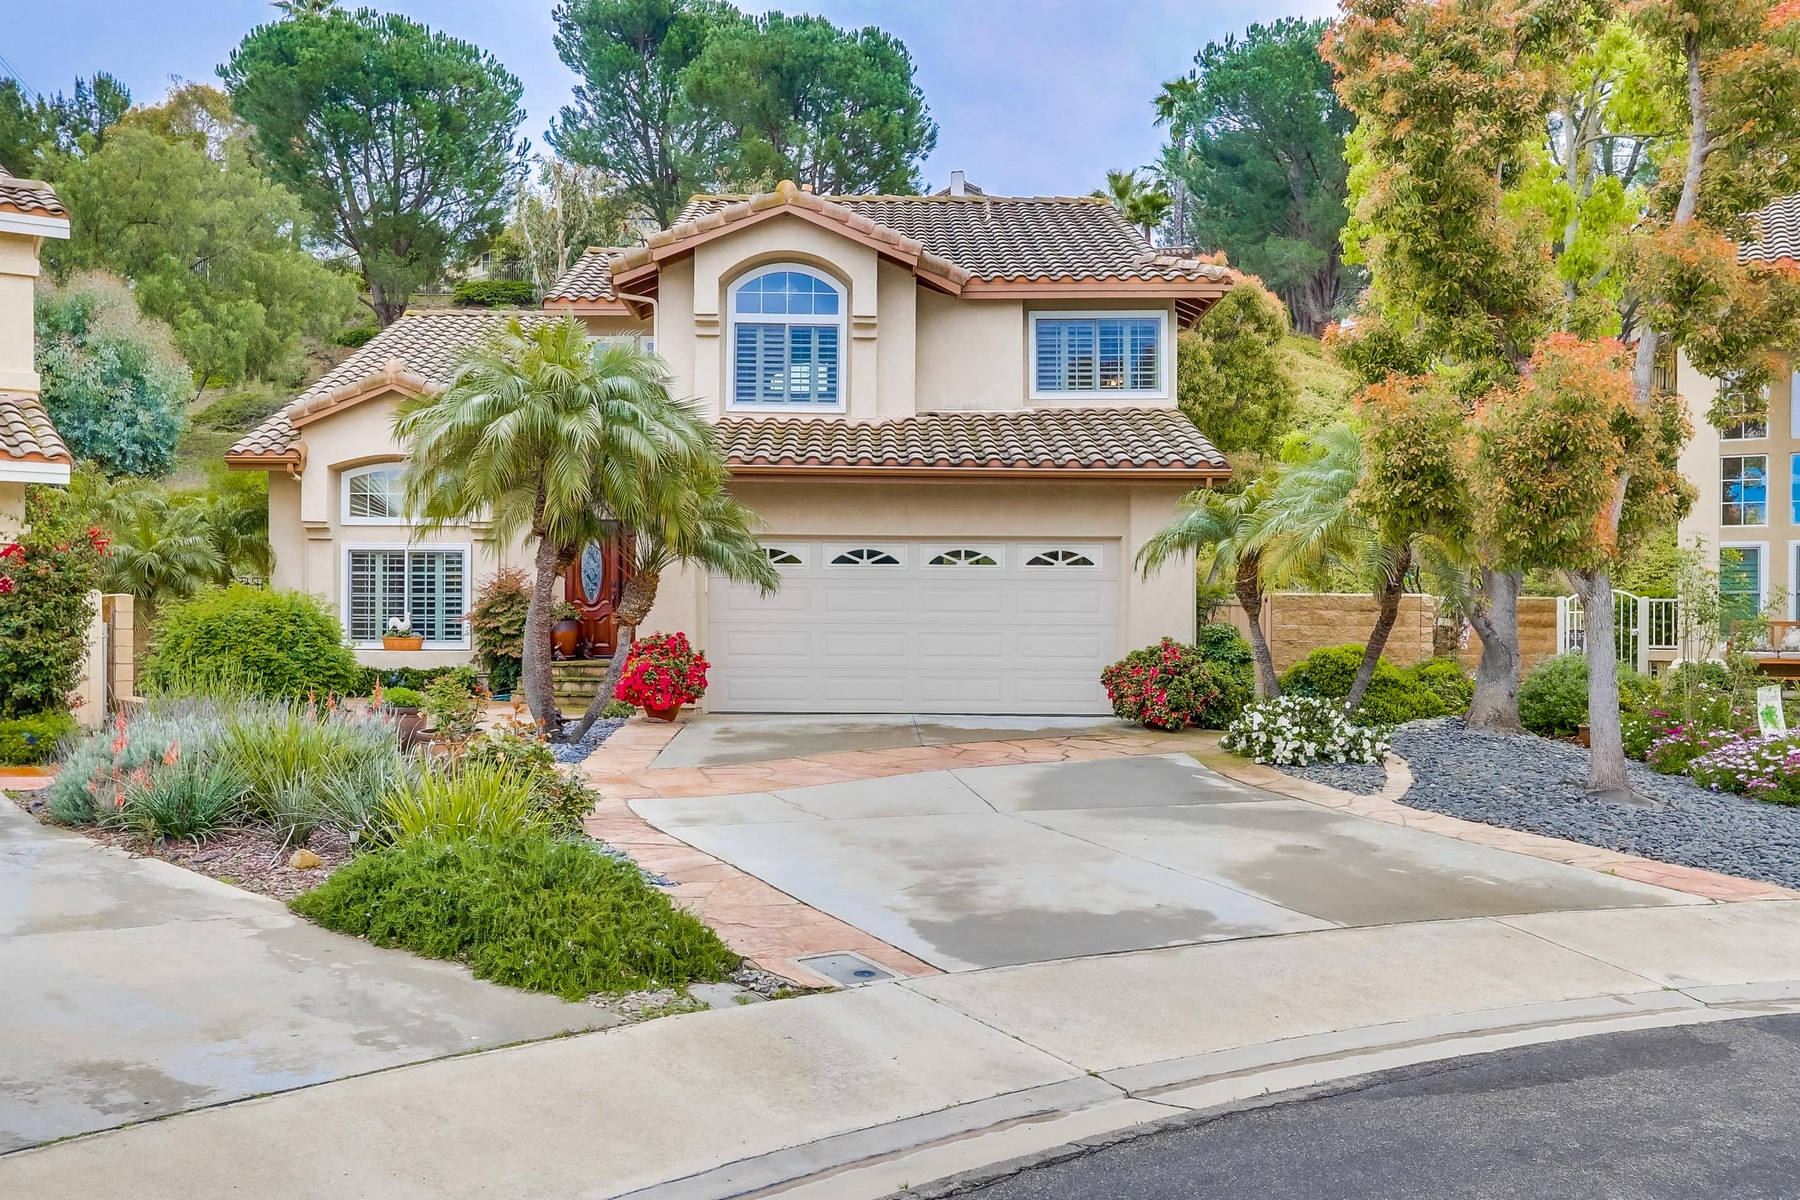 Single Family Homes for Active at 29 Northwinds Aliso Viejo, California 92656 United States